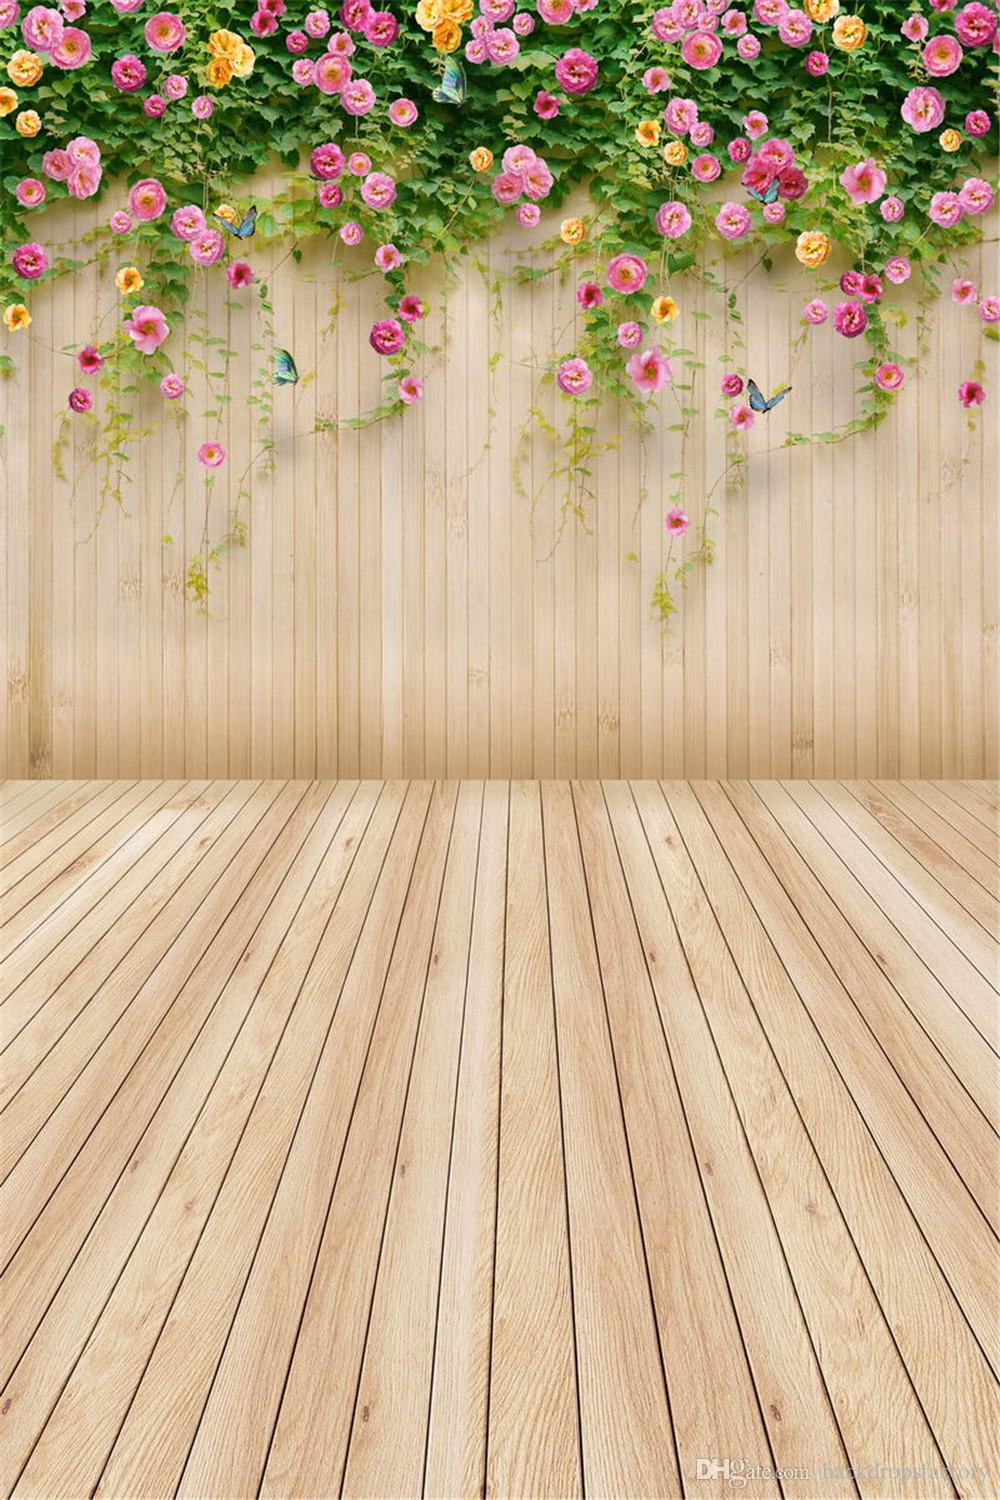 2019 Pink Yellow Flower Children Kids Spring Background Green Vines Wood Wall Floor Photography Backdrop Plank Baby Newborn Photo Shoot Wallpaper From